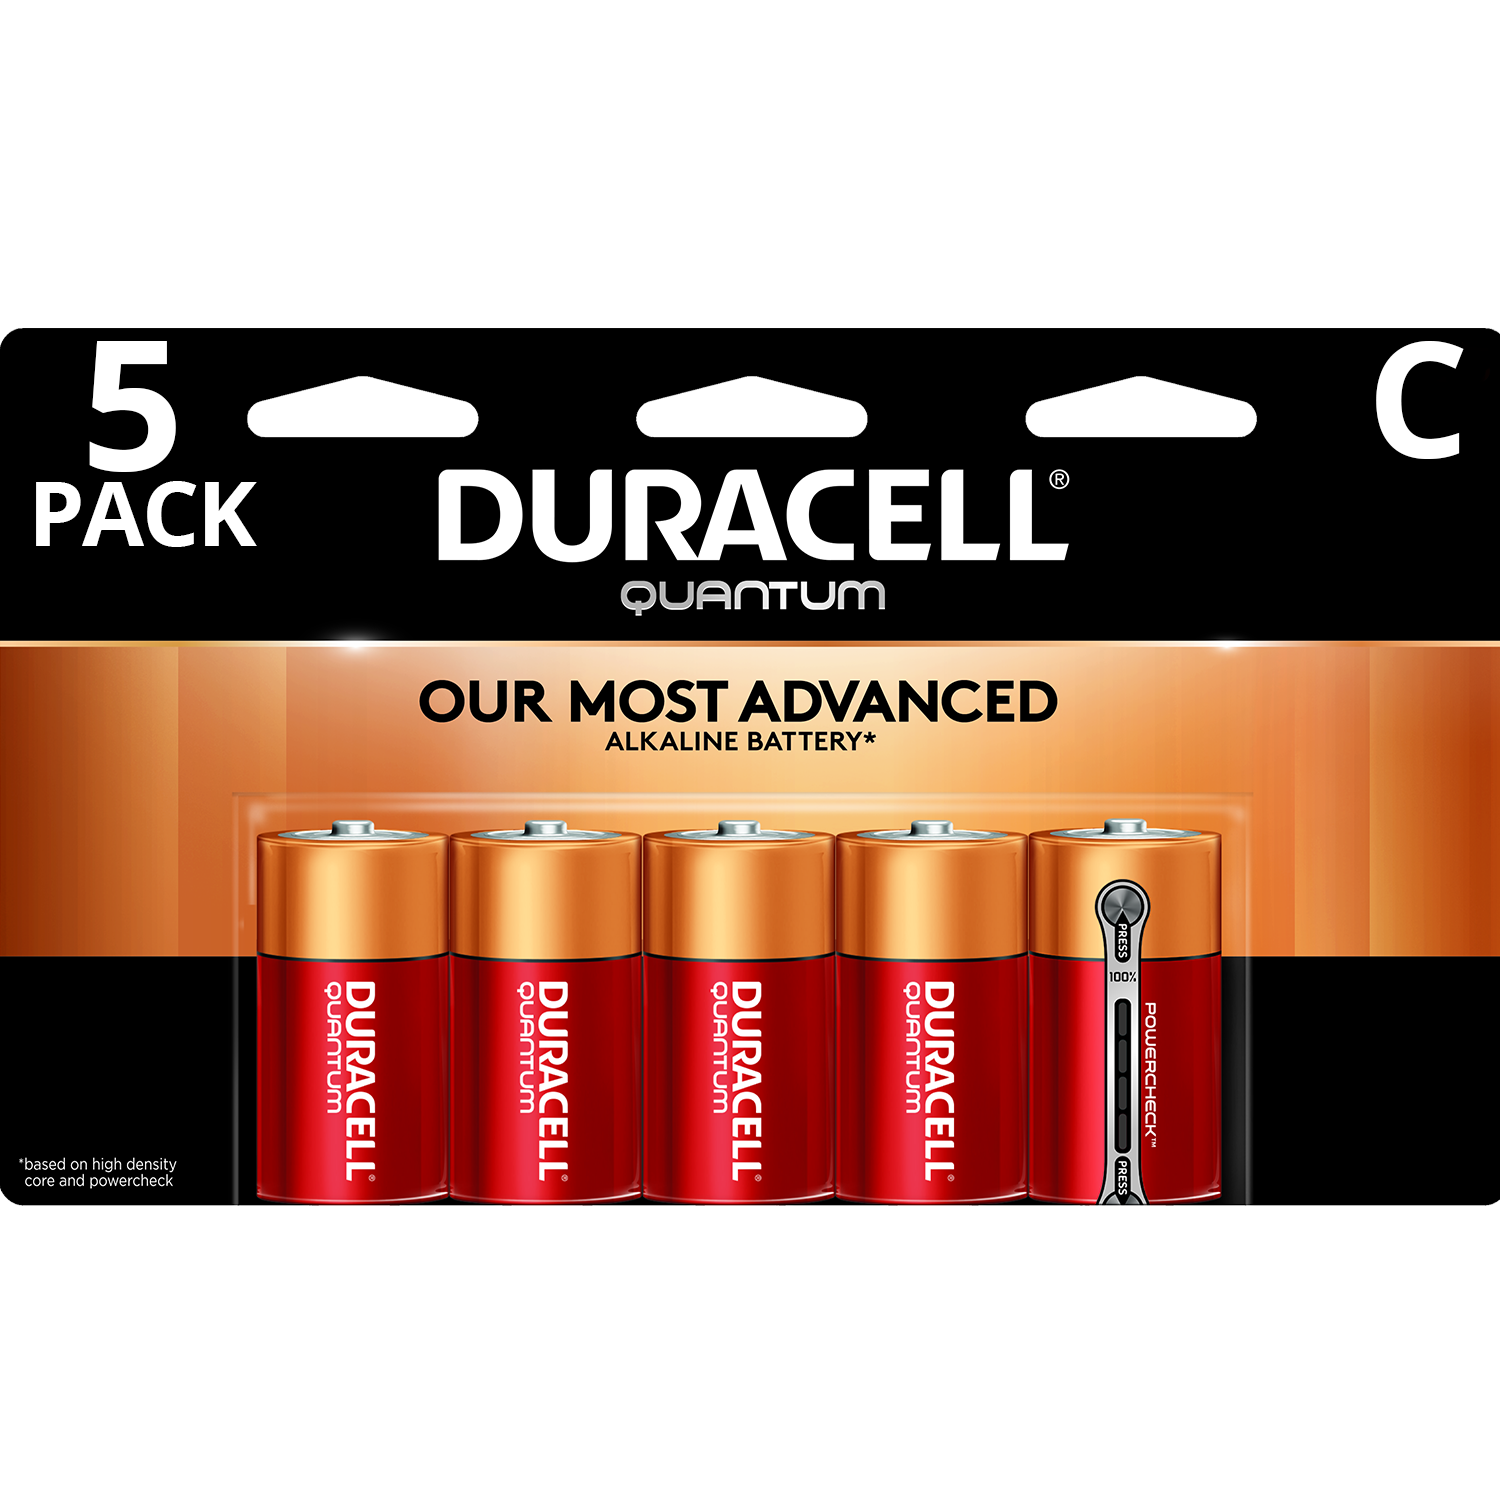 Duracell 1.5V Quantum Alkaline C Batteries with PowerCheck 5 Pack